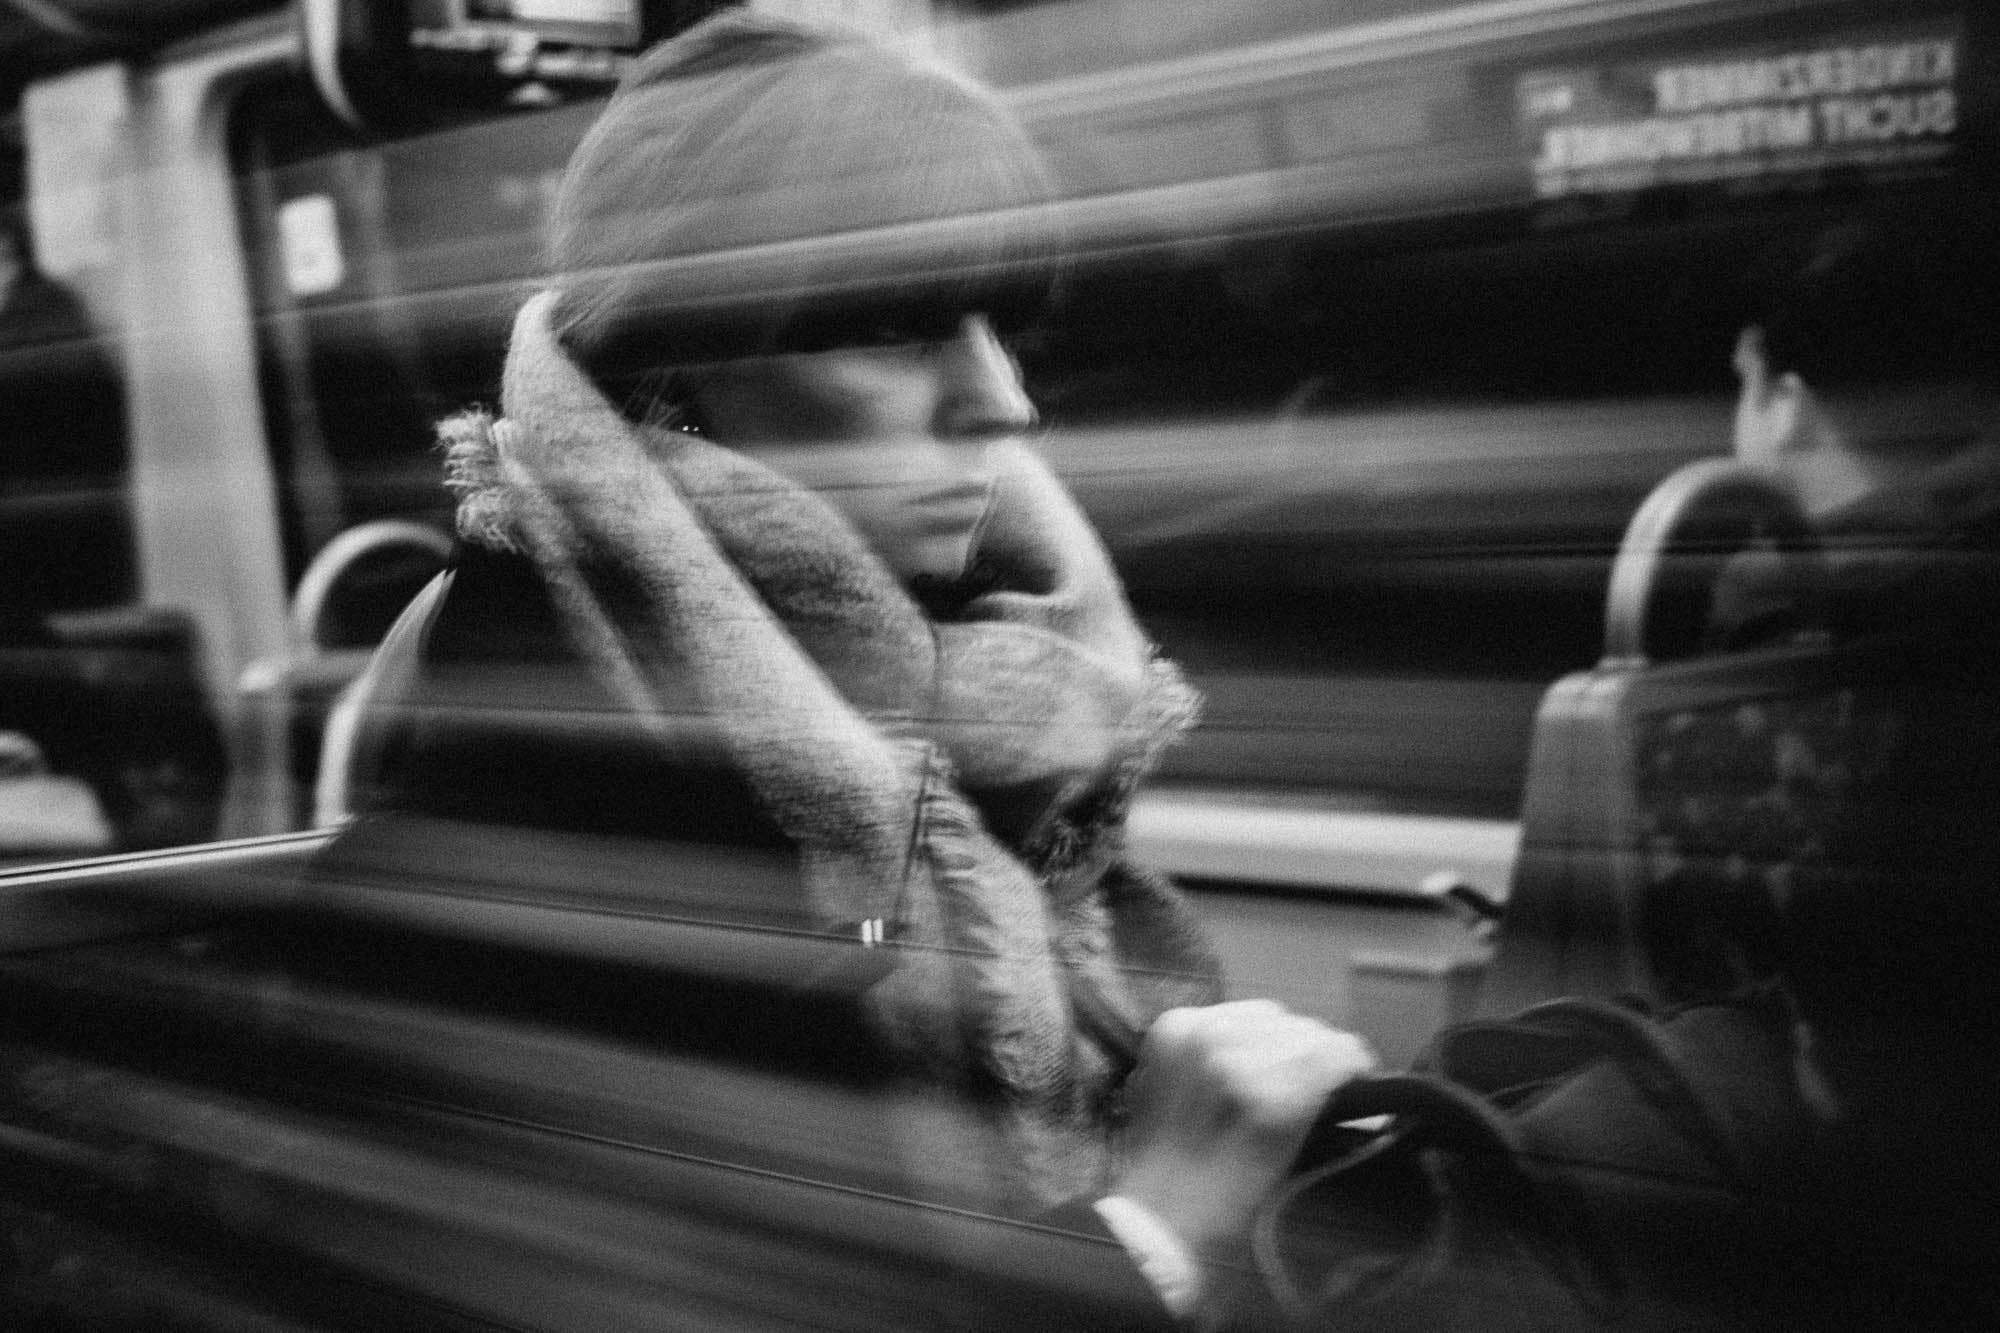 Flüchtige Blicke: Photos of Disappearing Strangers on a Daily Commute